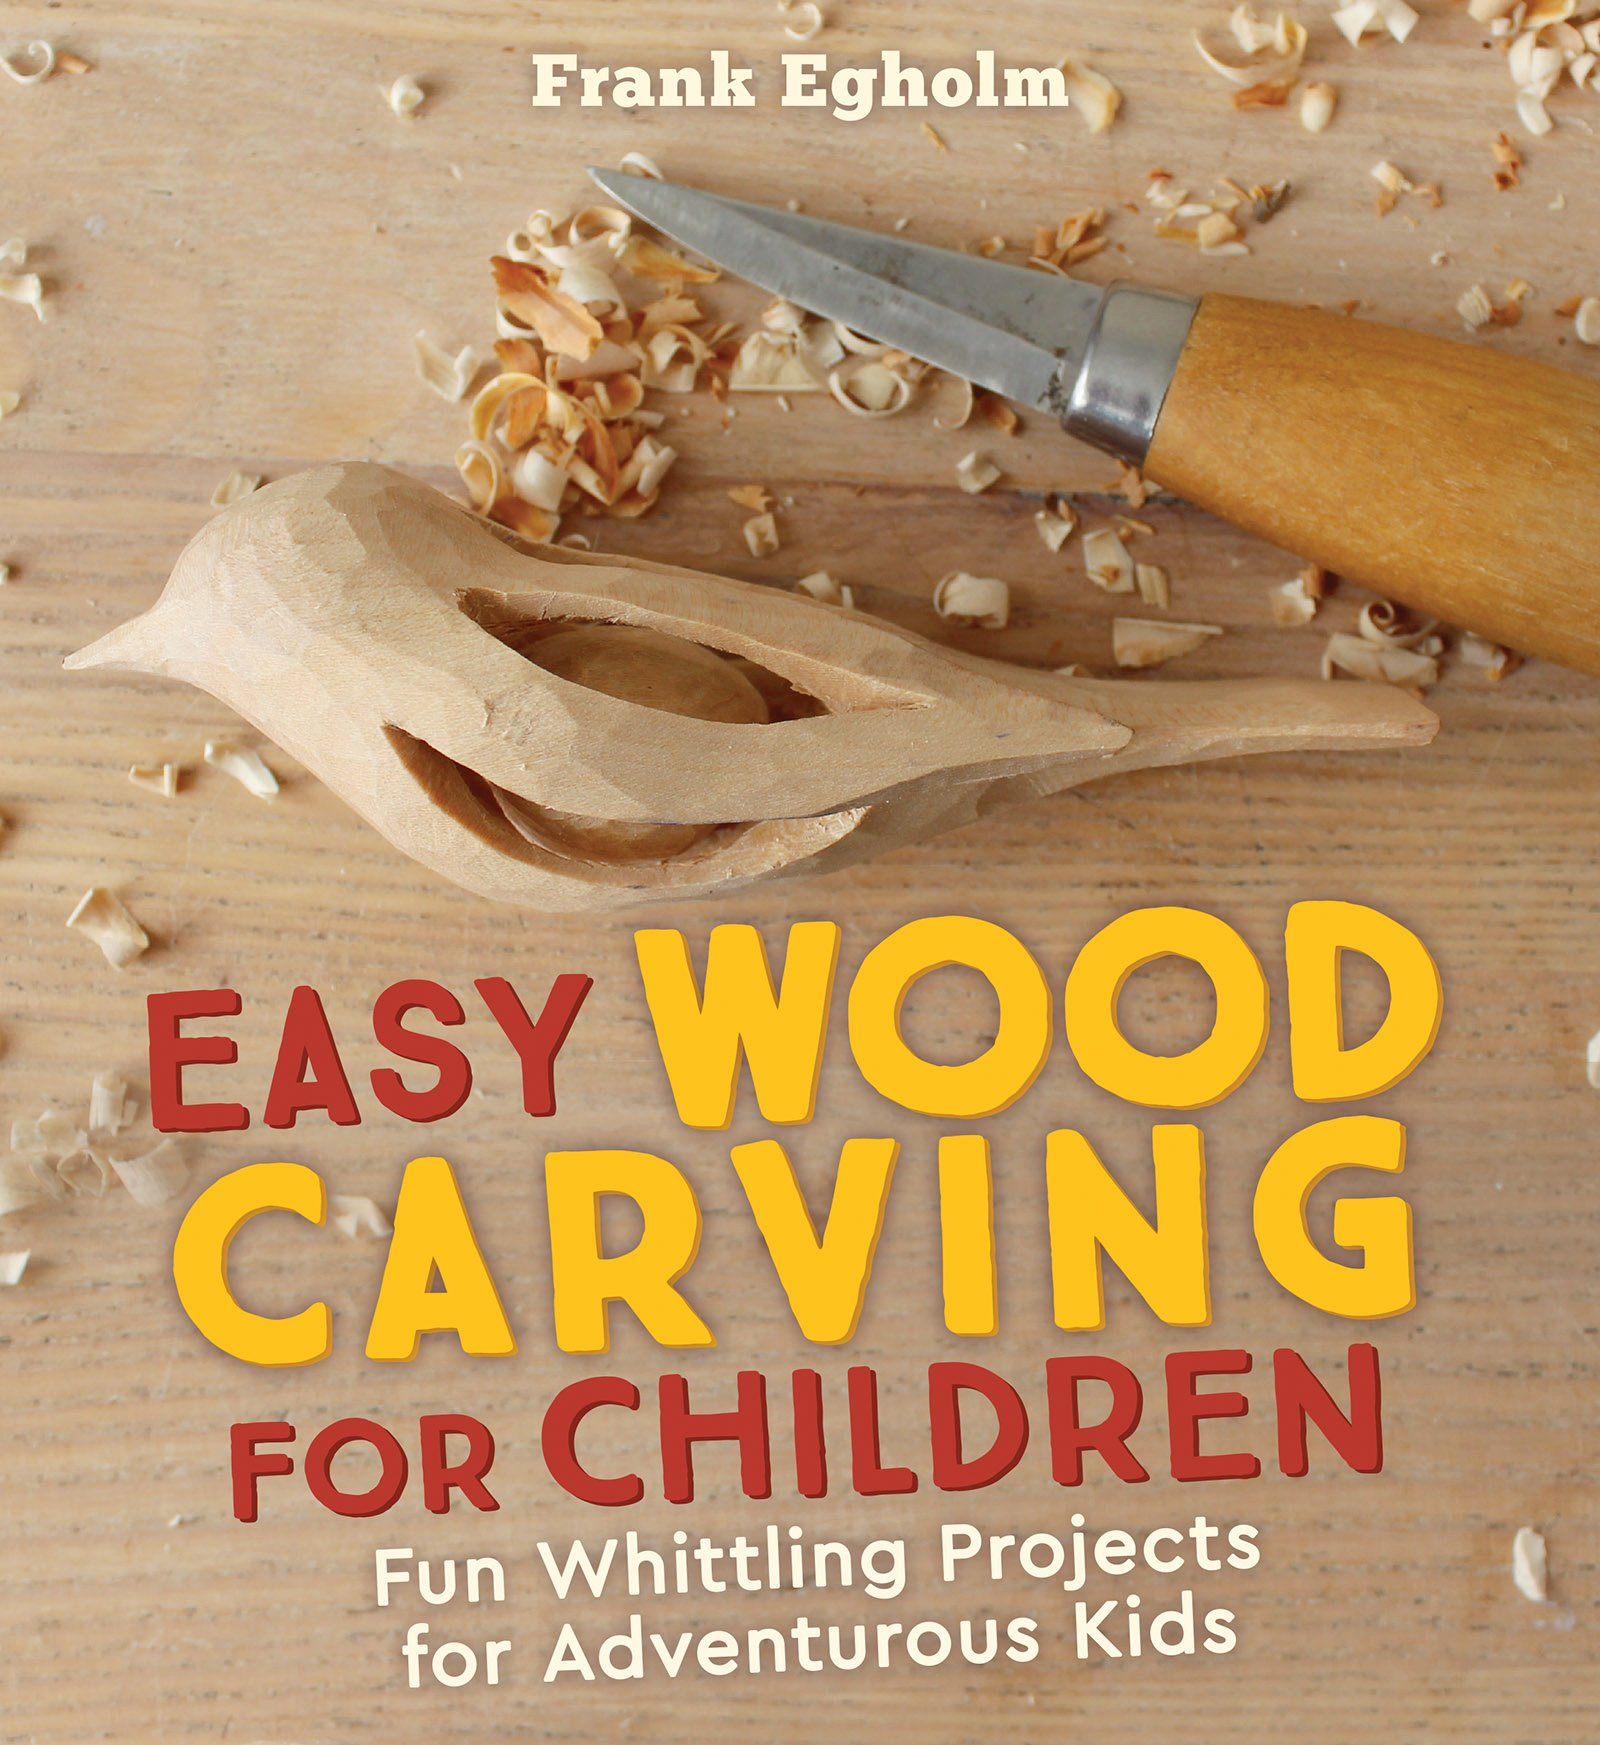 Easy Wood Carving For Children Fun Whittling Projects For